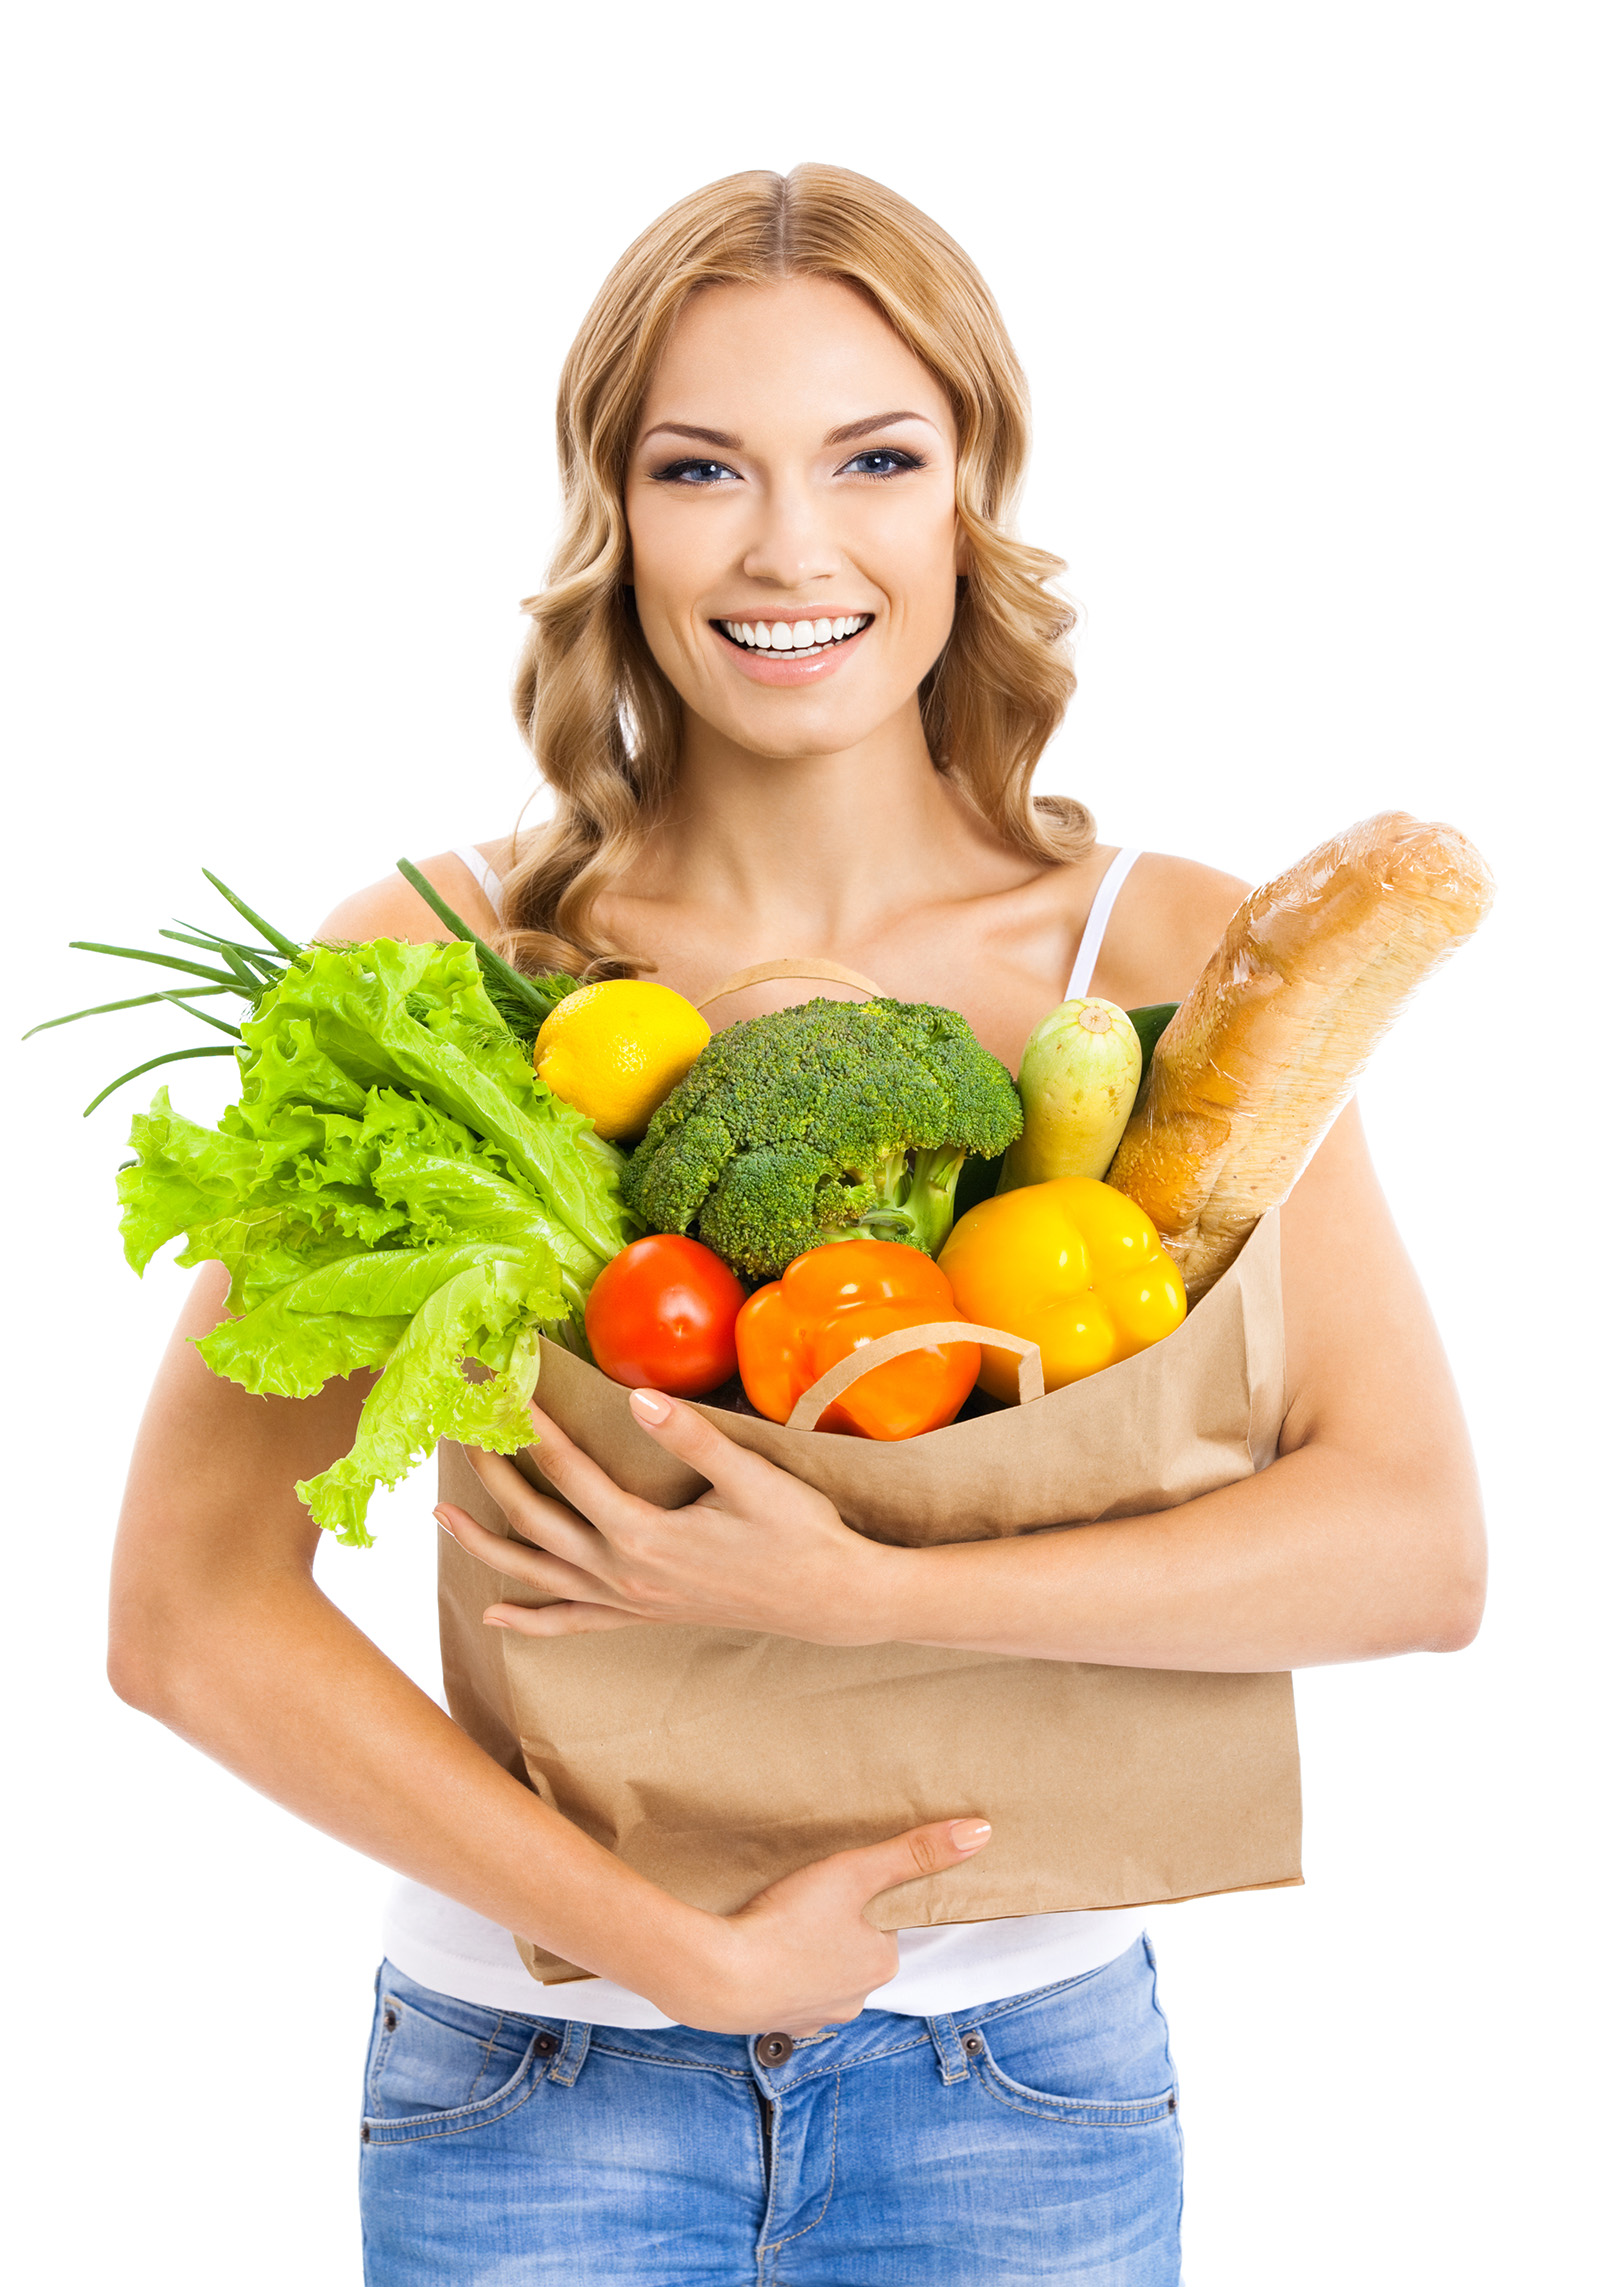 Vegetables for Natural Remedies for Motor Neuron Disease